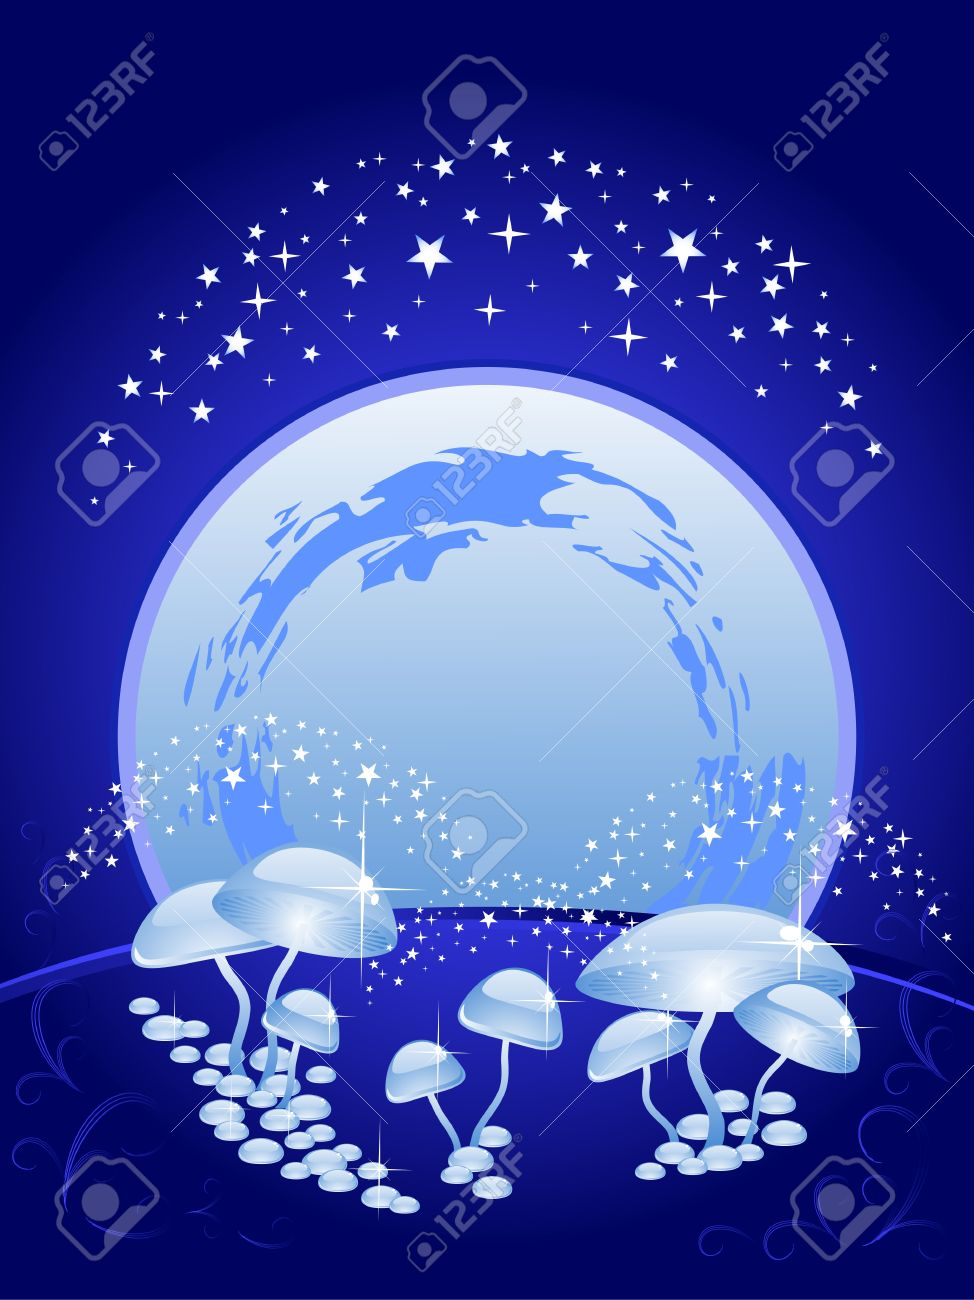 background blue. The beautiful night scenery. The sky, full moon, magic mushrooms. Halloween. Stock Vector - 10849009